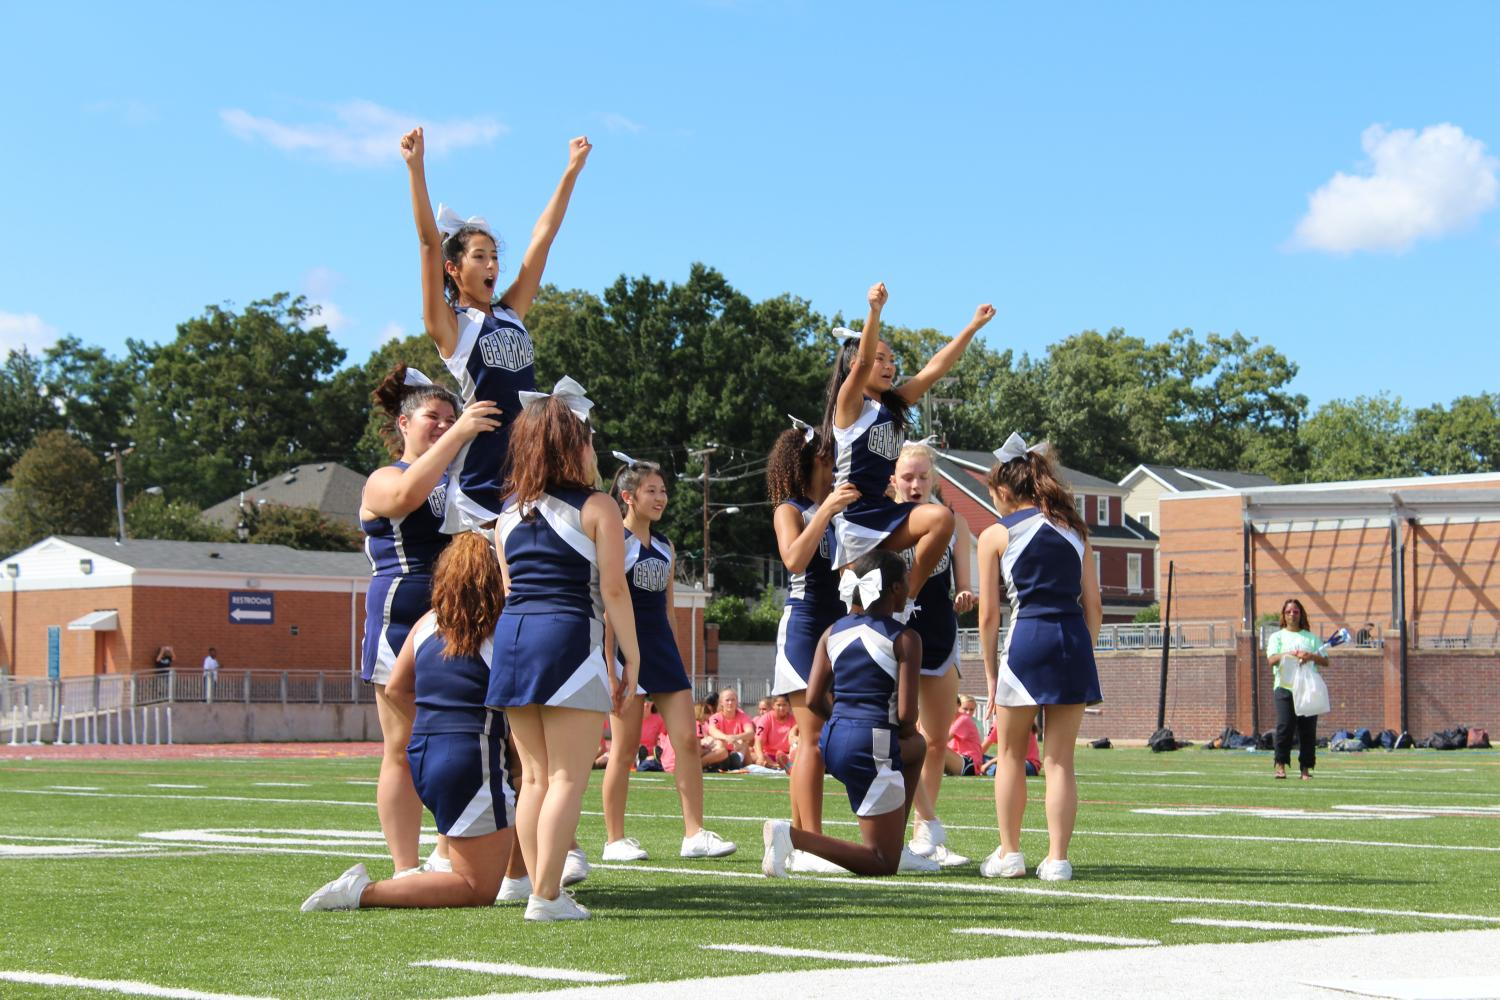 The JV cheer team gets ready to lift two of their members